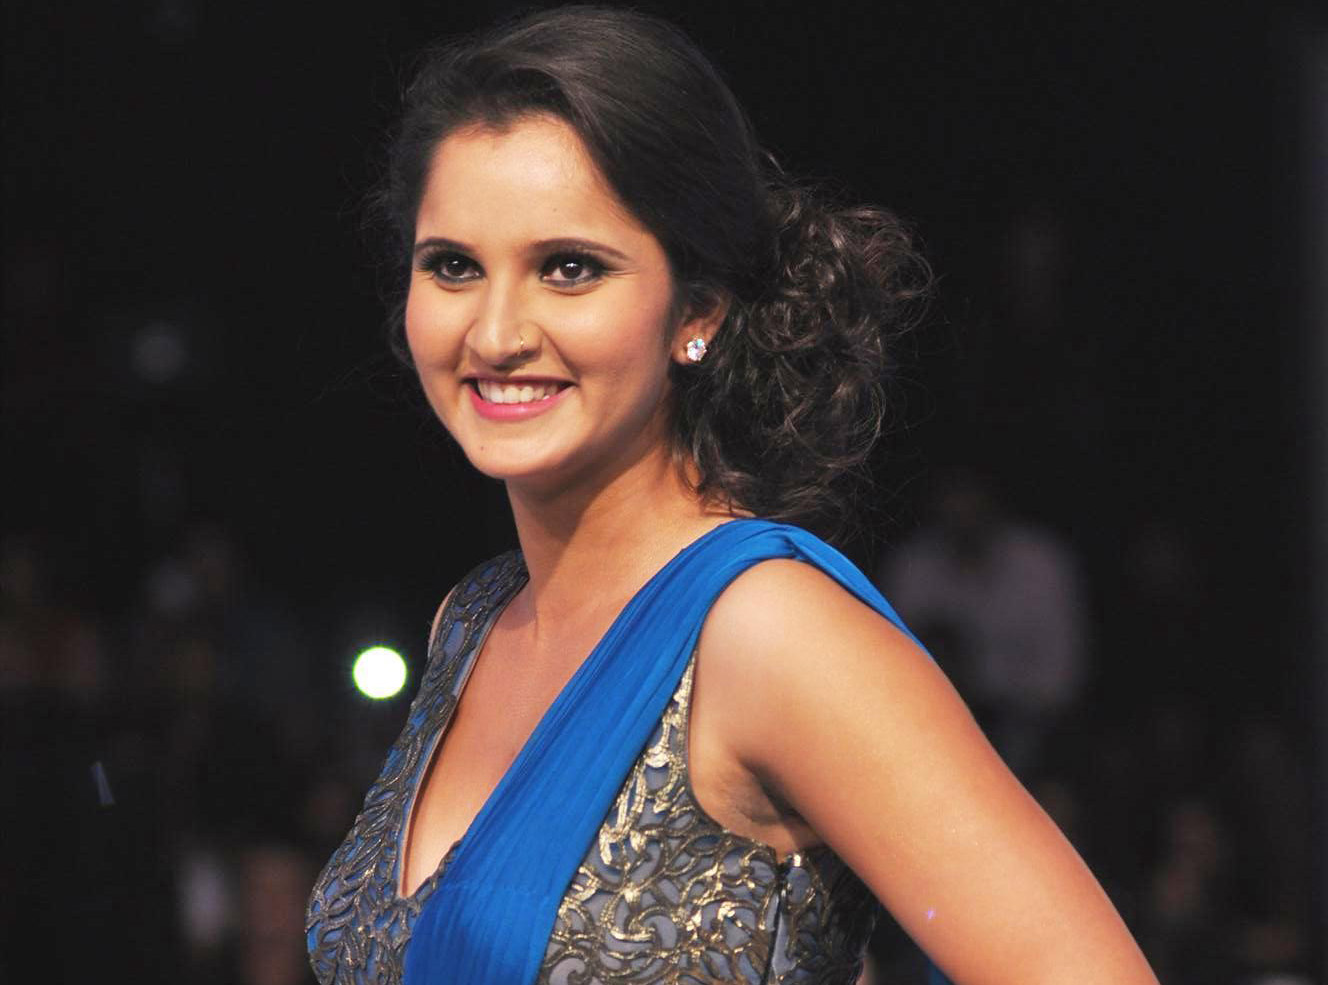 1328x985 - Sania Mirza Wallpapers 7